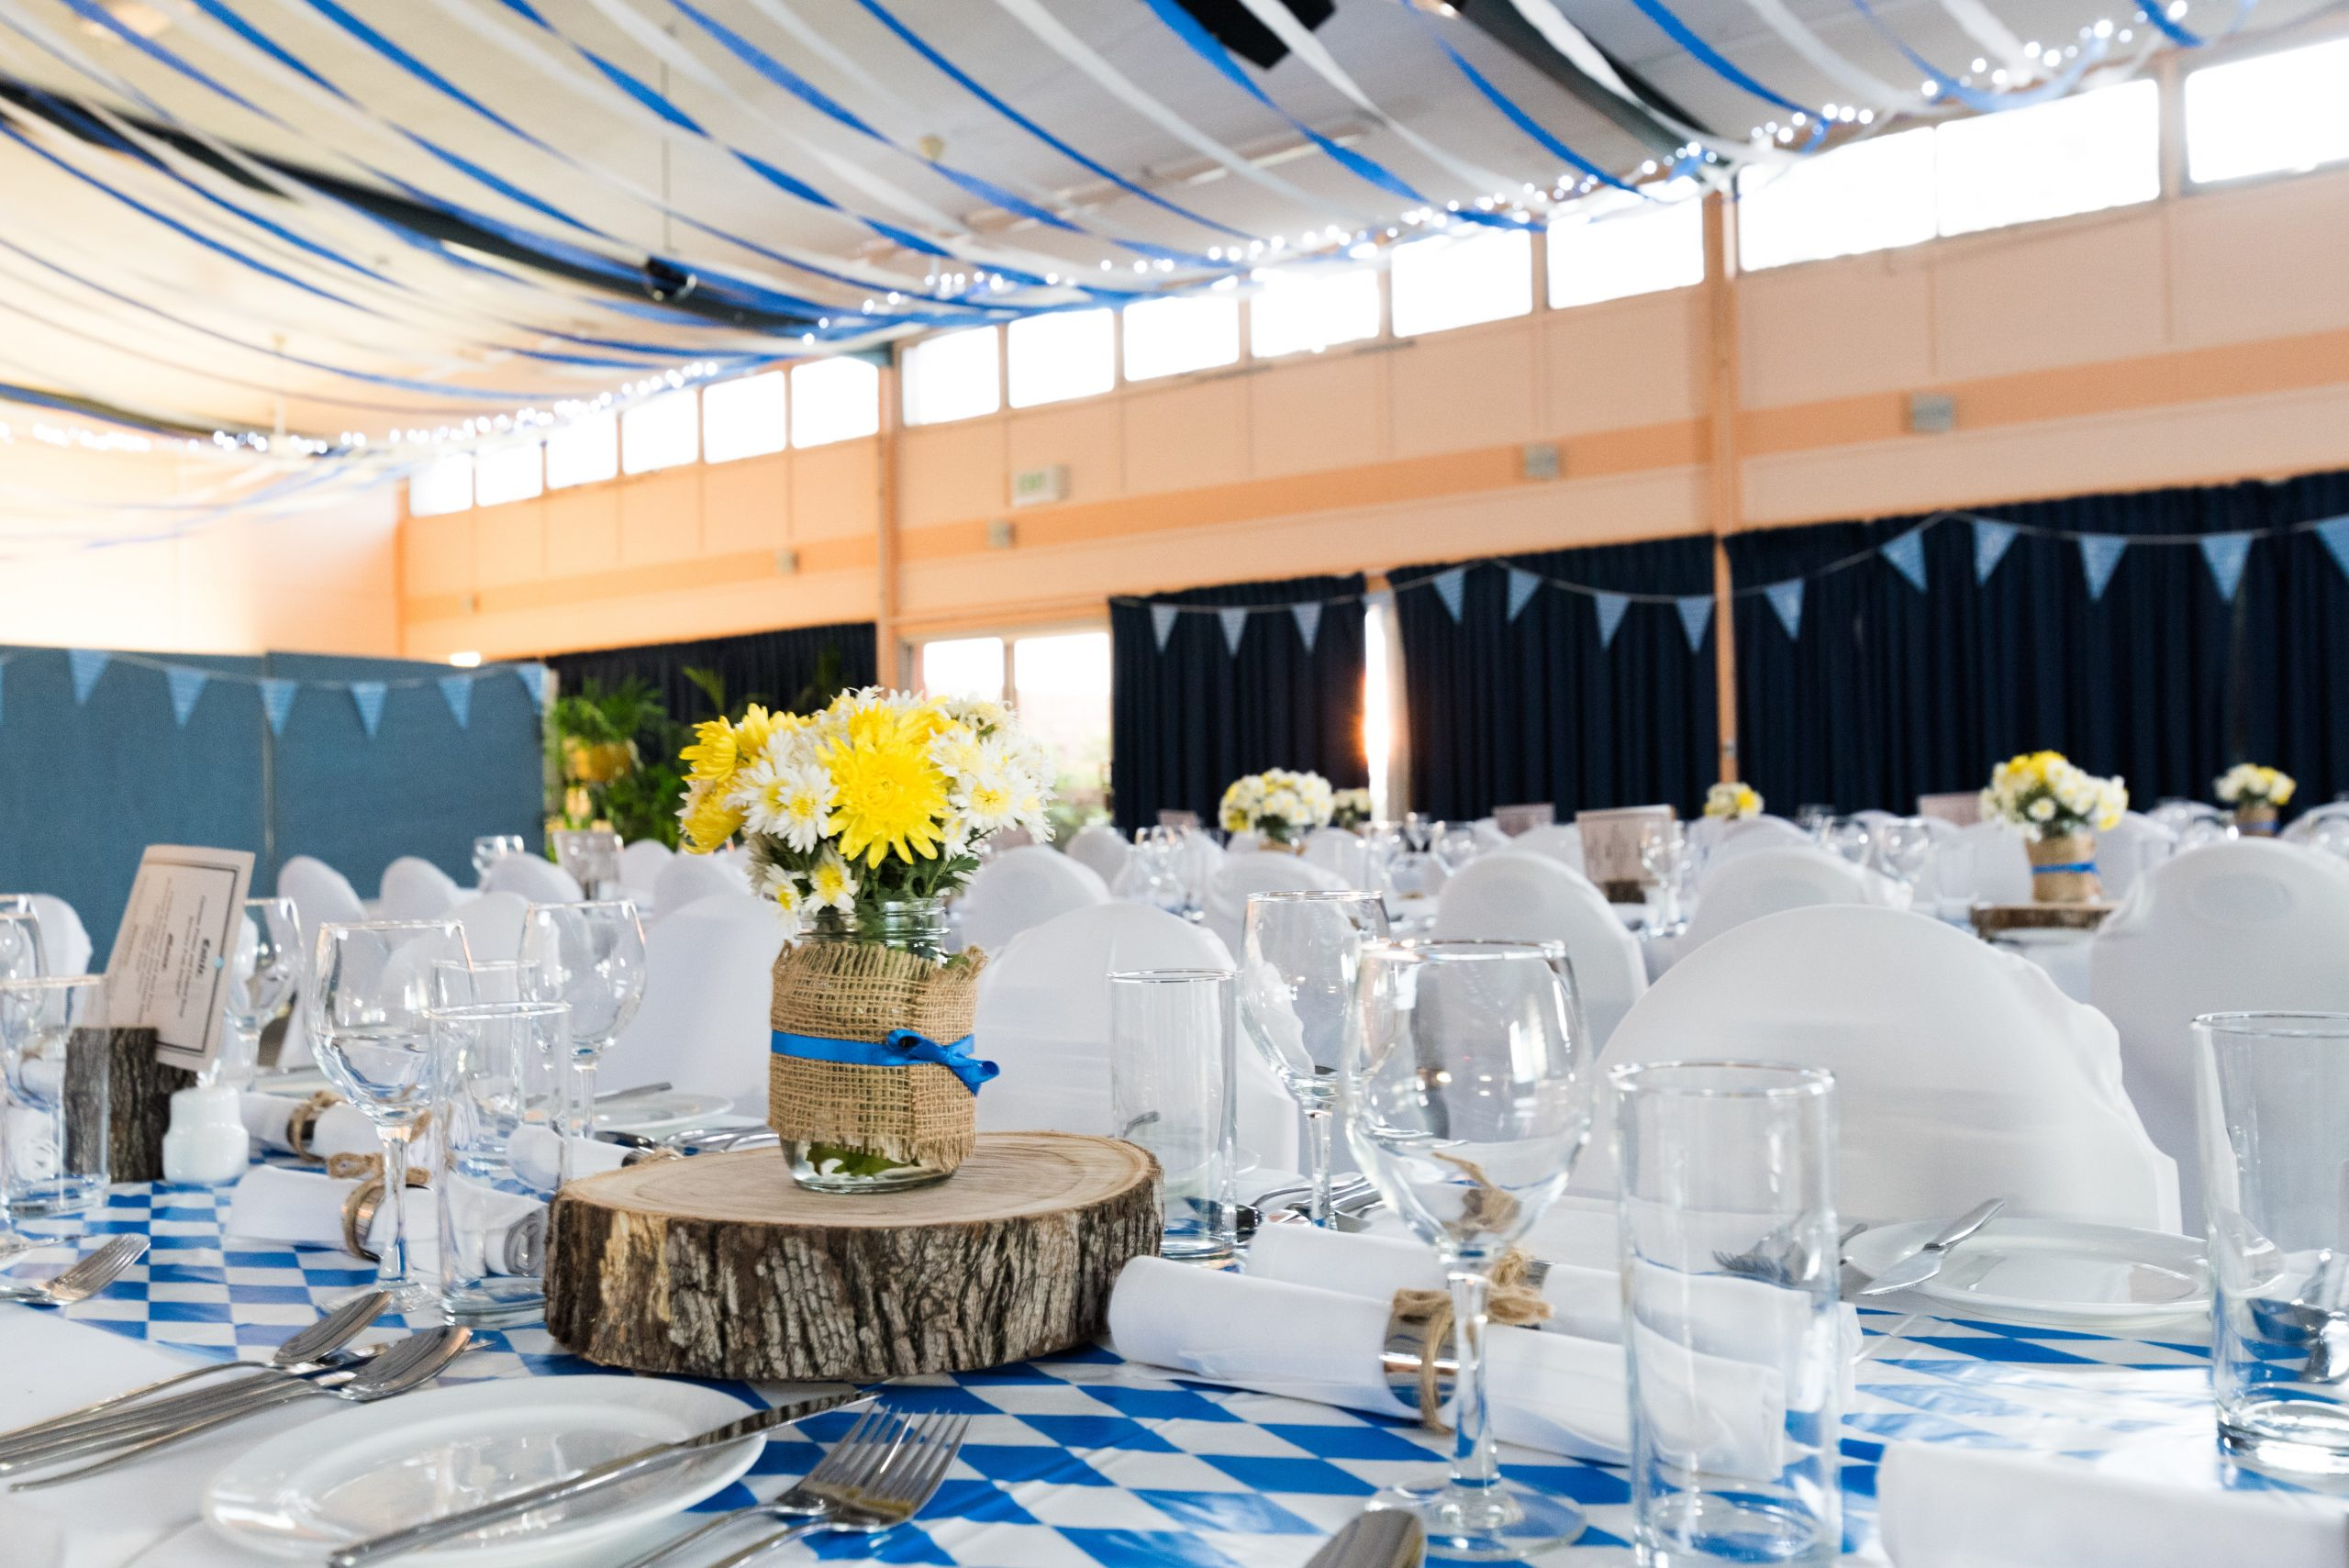 CVNL Blog. Riding The Wave: Event Planning In The Changing Landscape